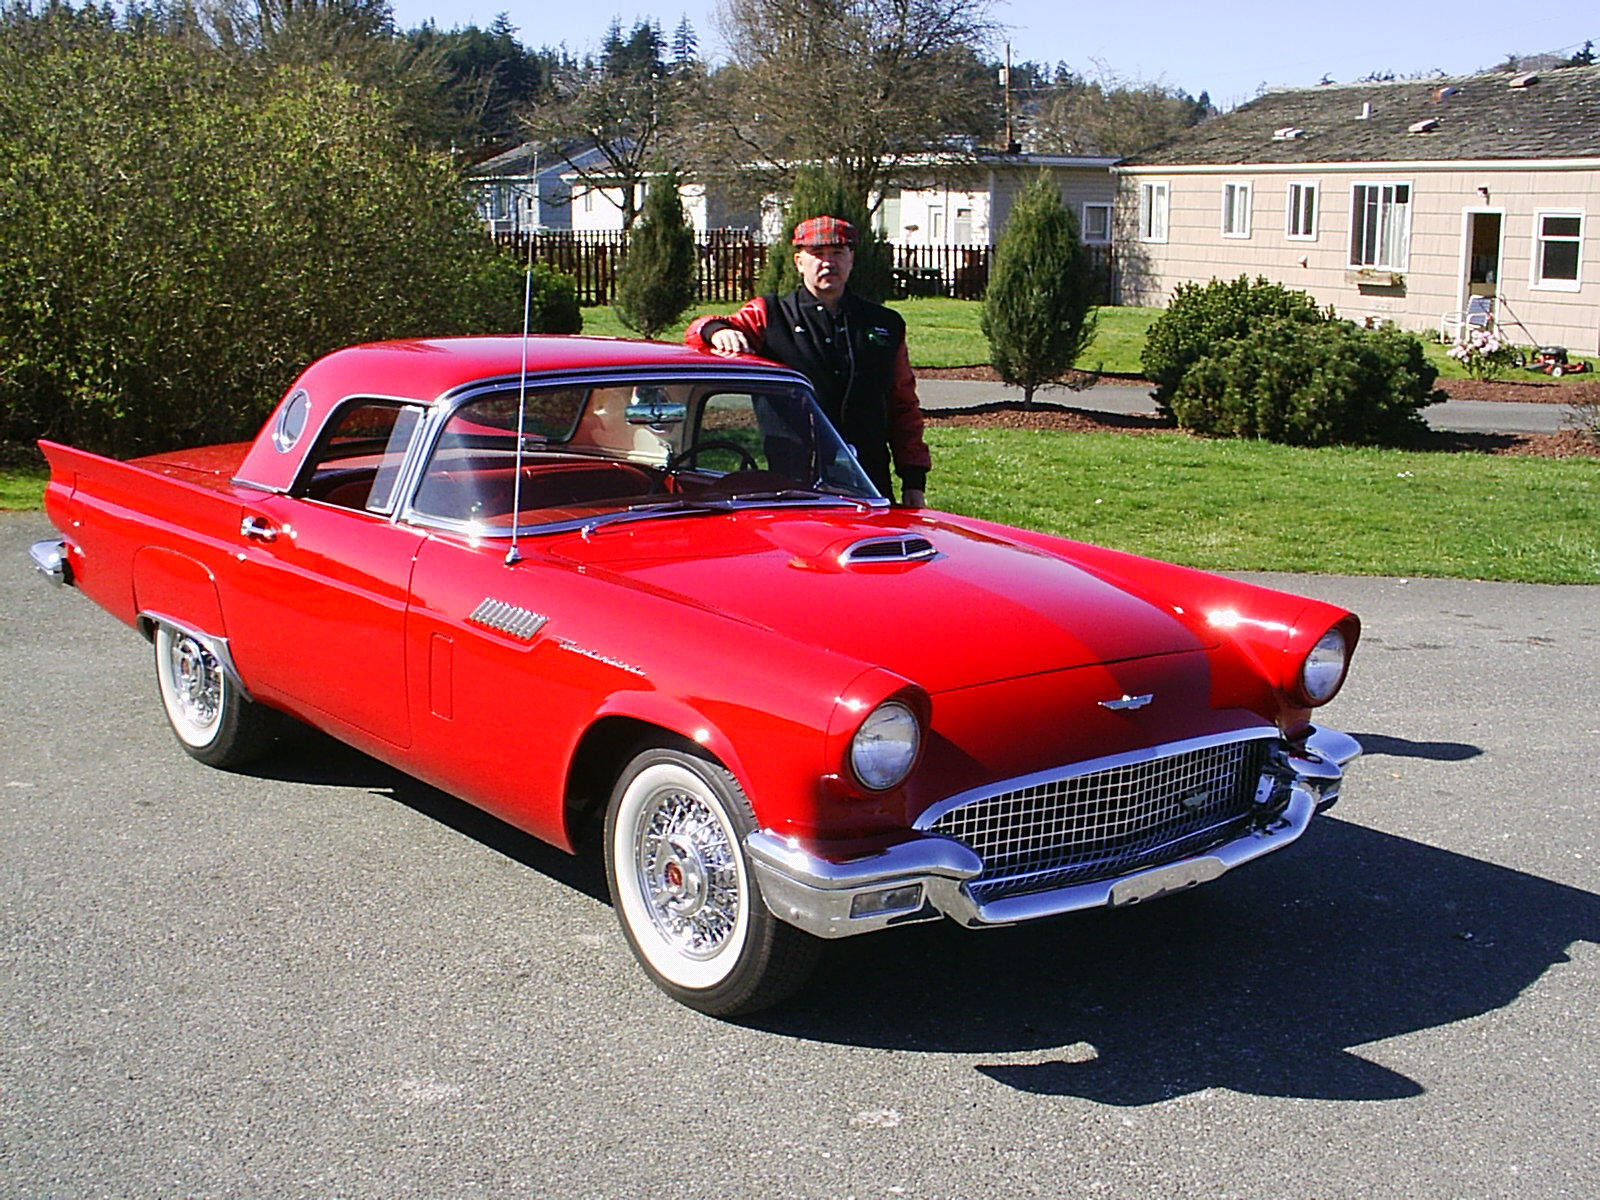 Robert McConchie 1957 Ford T-Bird